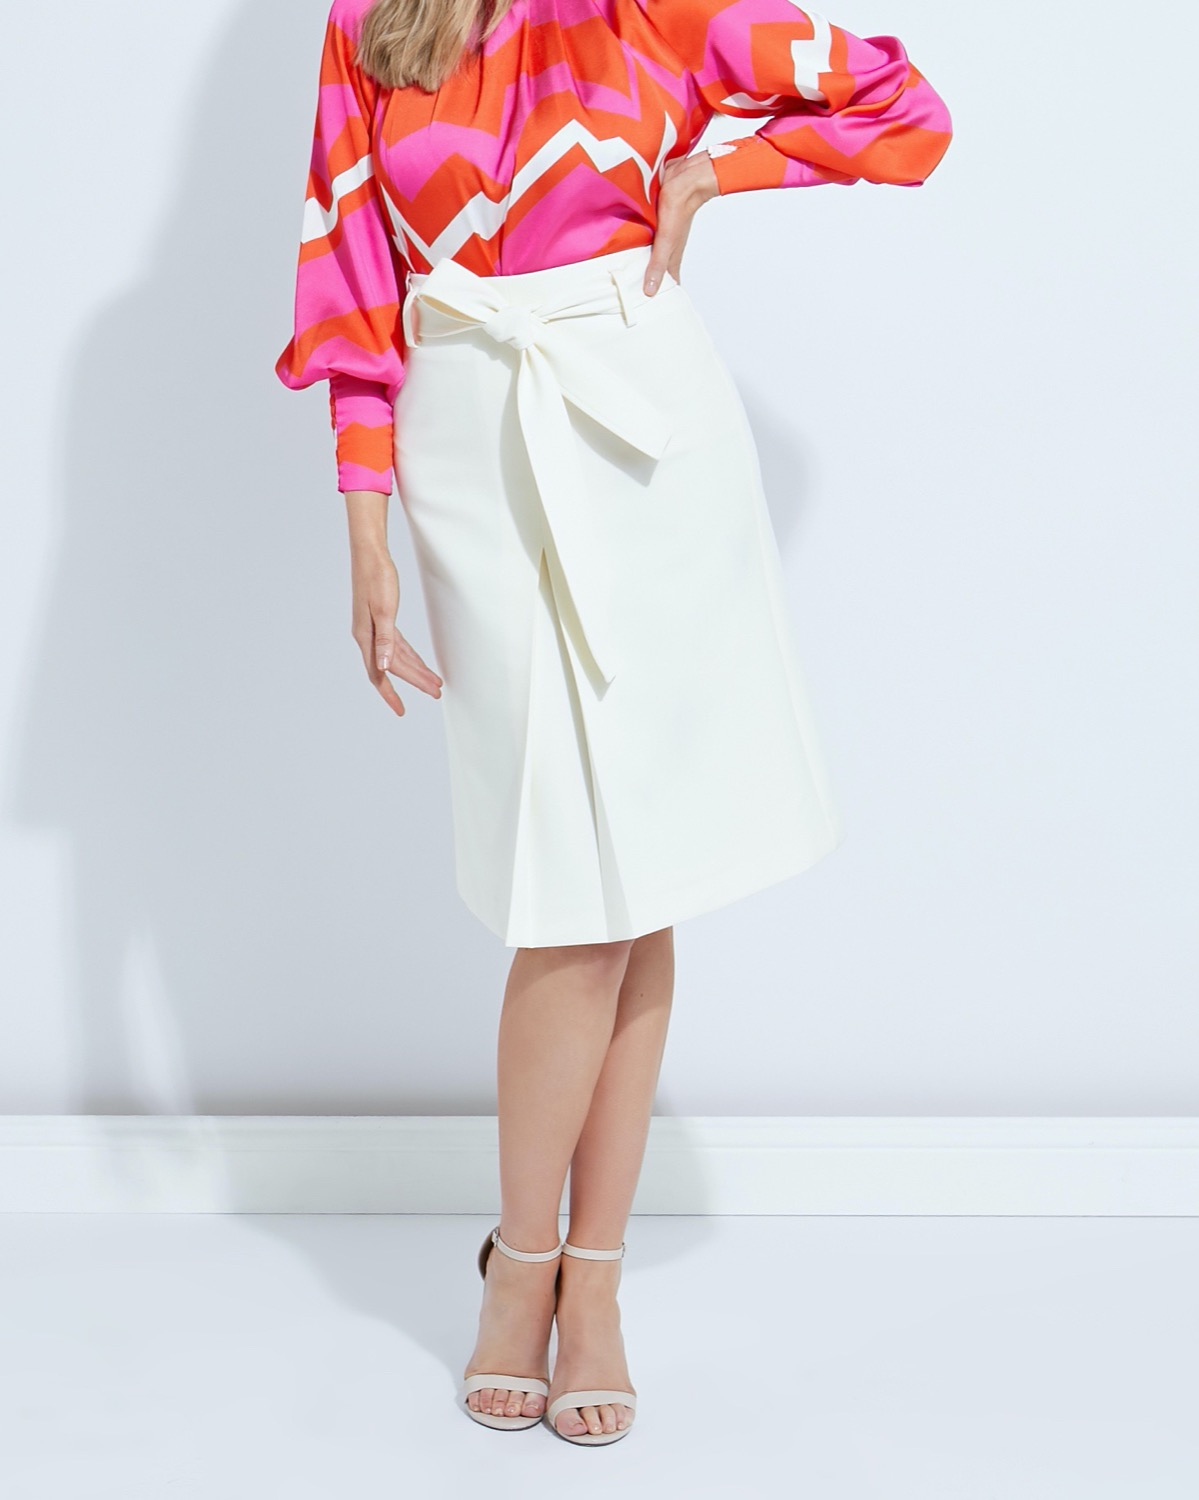 Lennon Courtney at Dunnes Stores Box Pleat Skirt